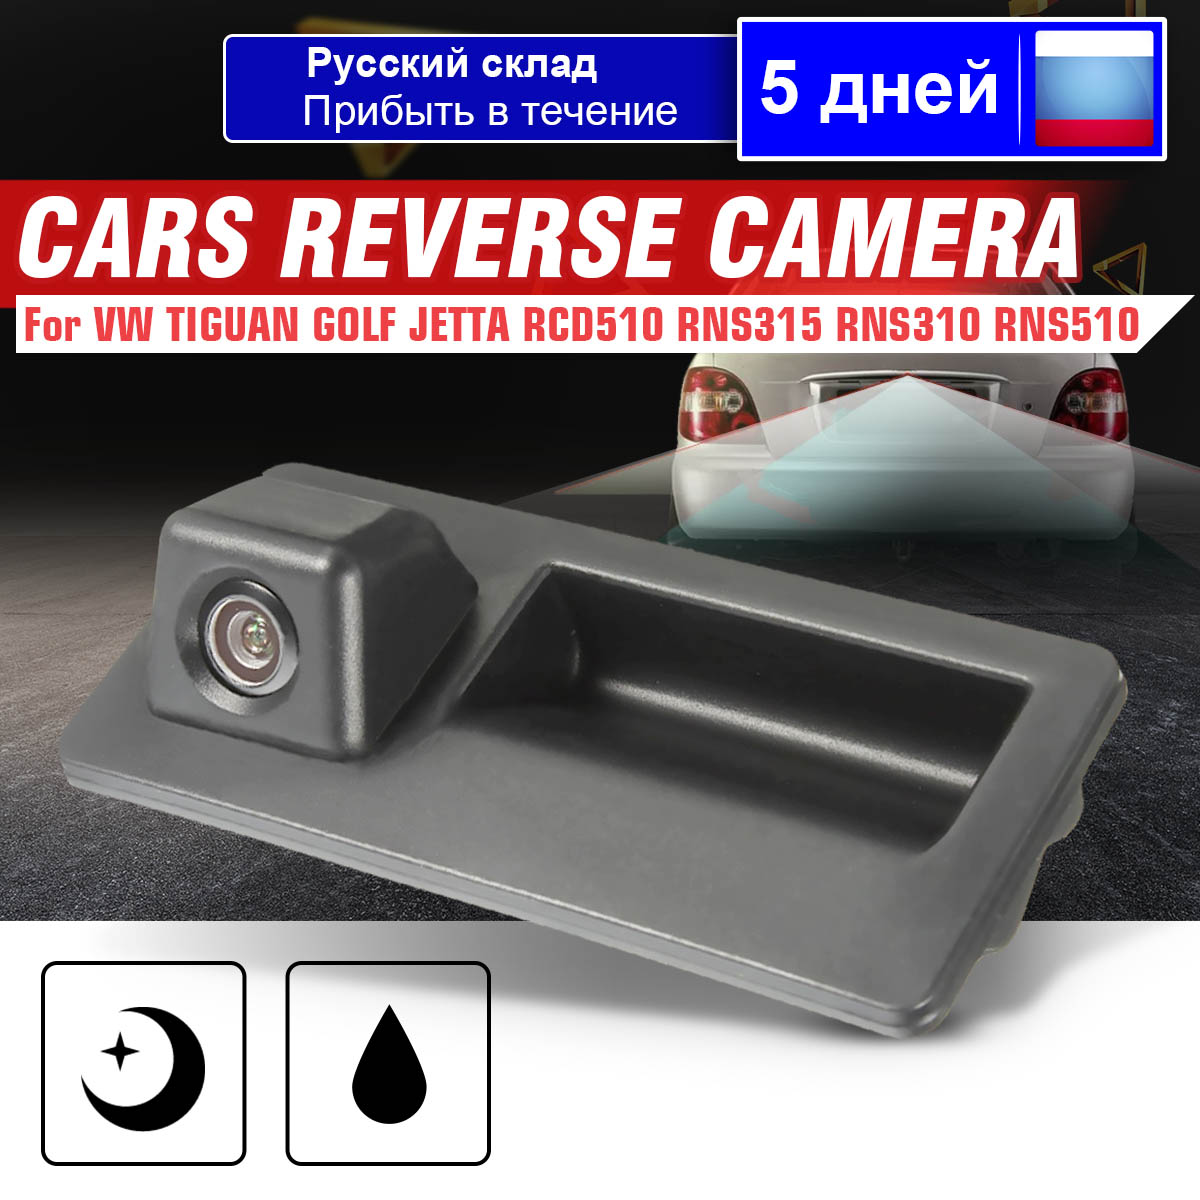 HD Car Rear View Camera Reverse Camera Parking For Audi A4 A5 S5 Q3 Q5 for VW Golf Passat Tiguan Jetta Sharan Touareg B6 B7